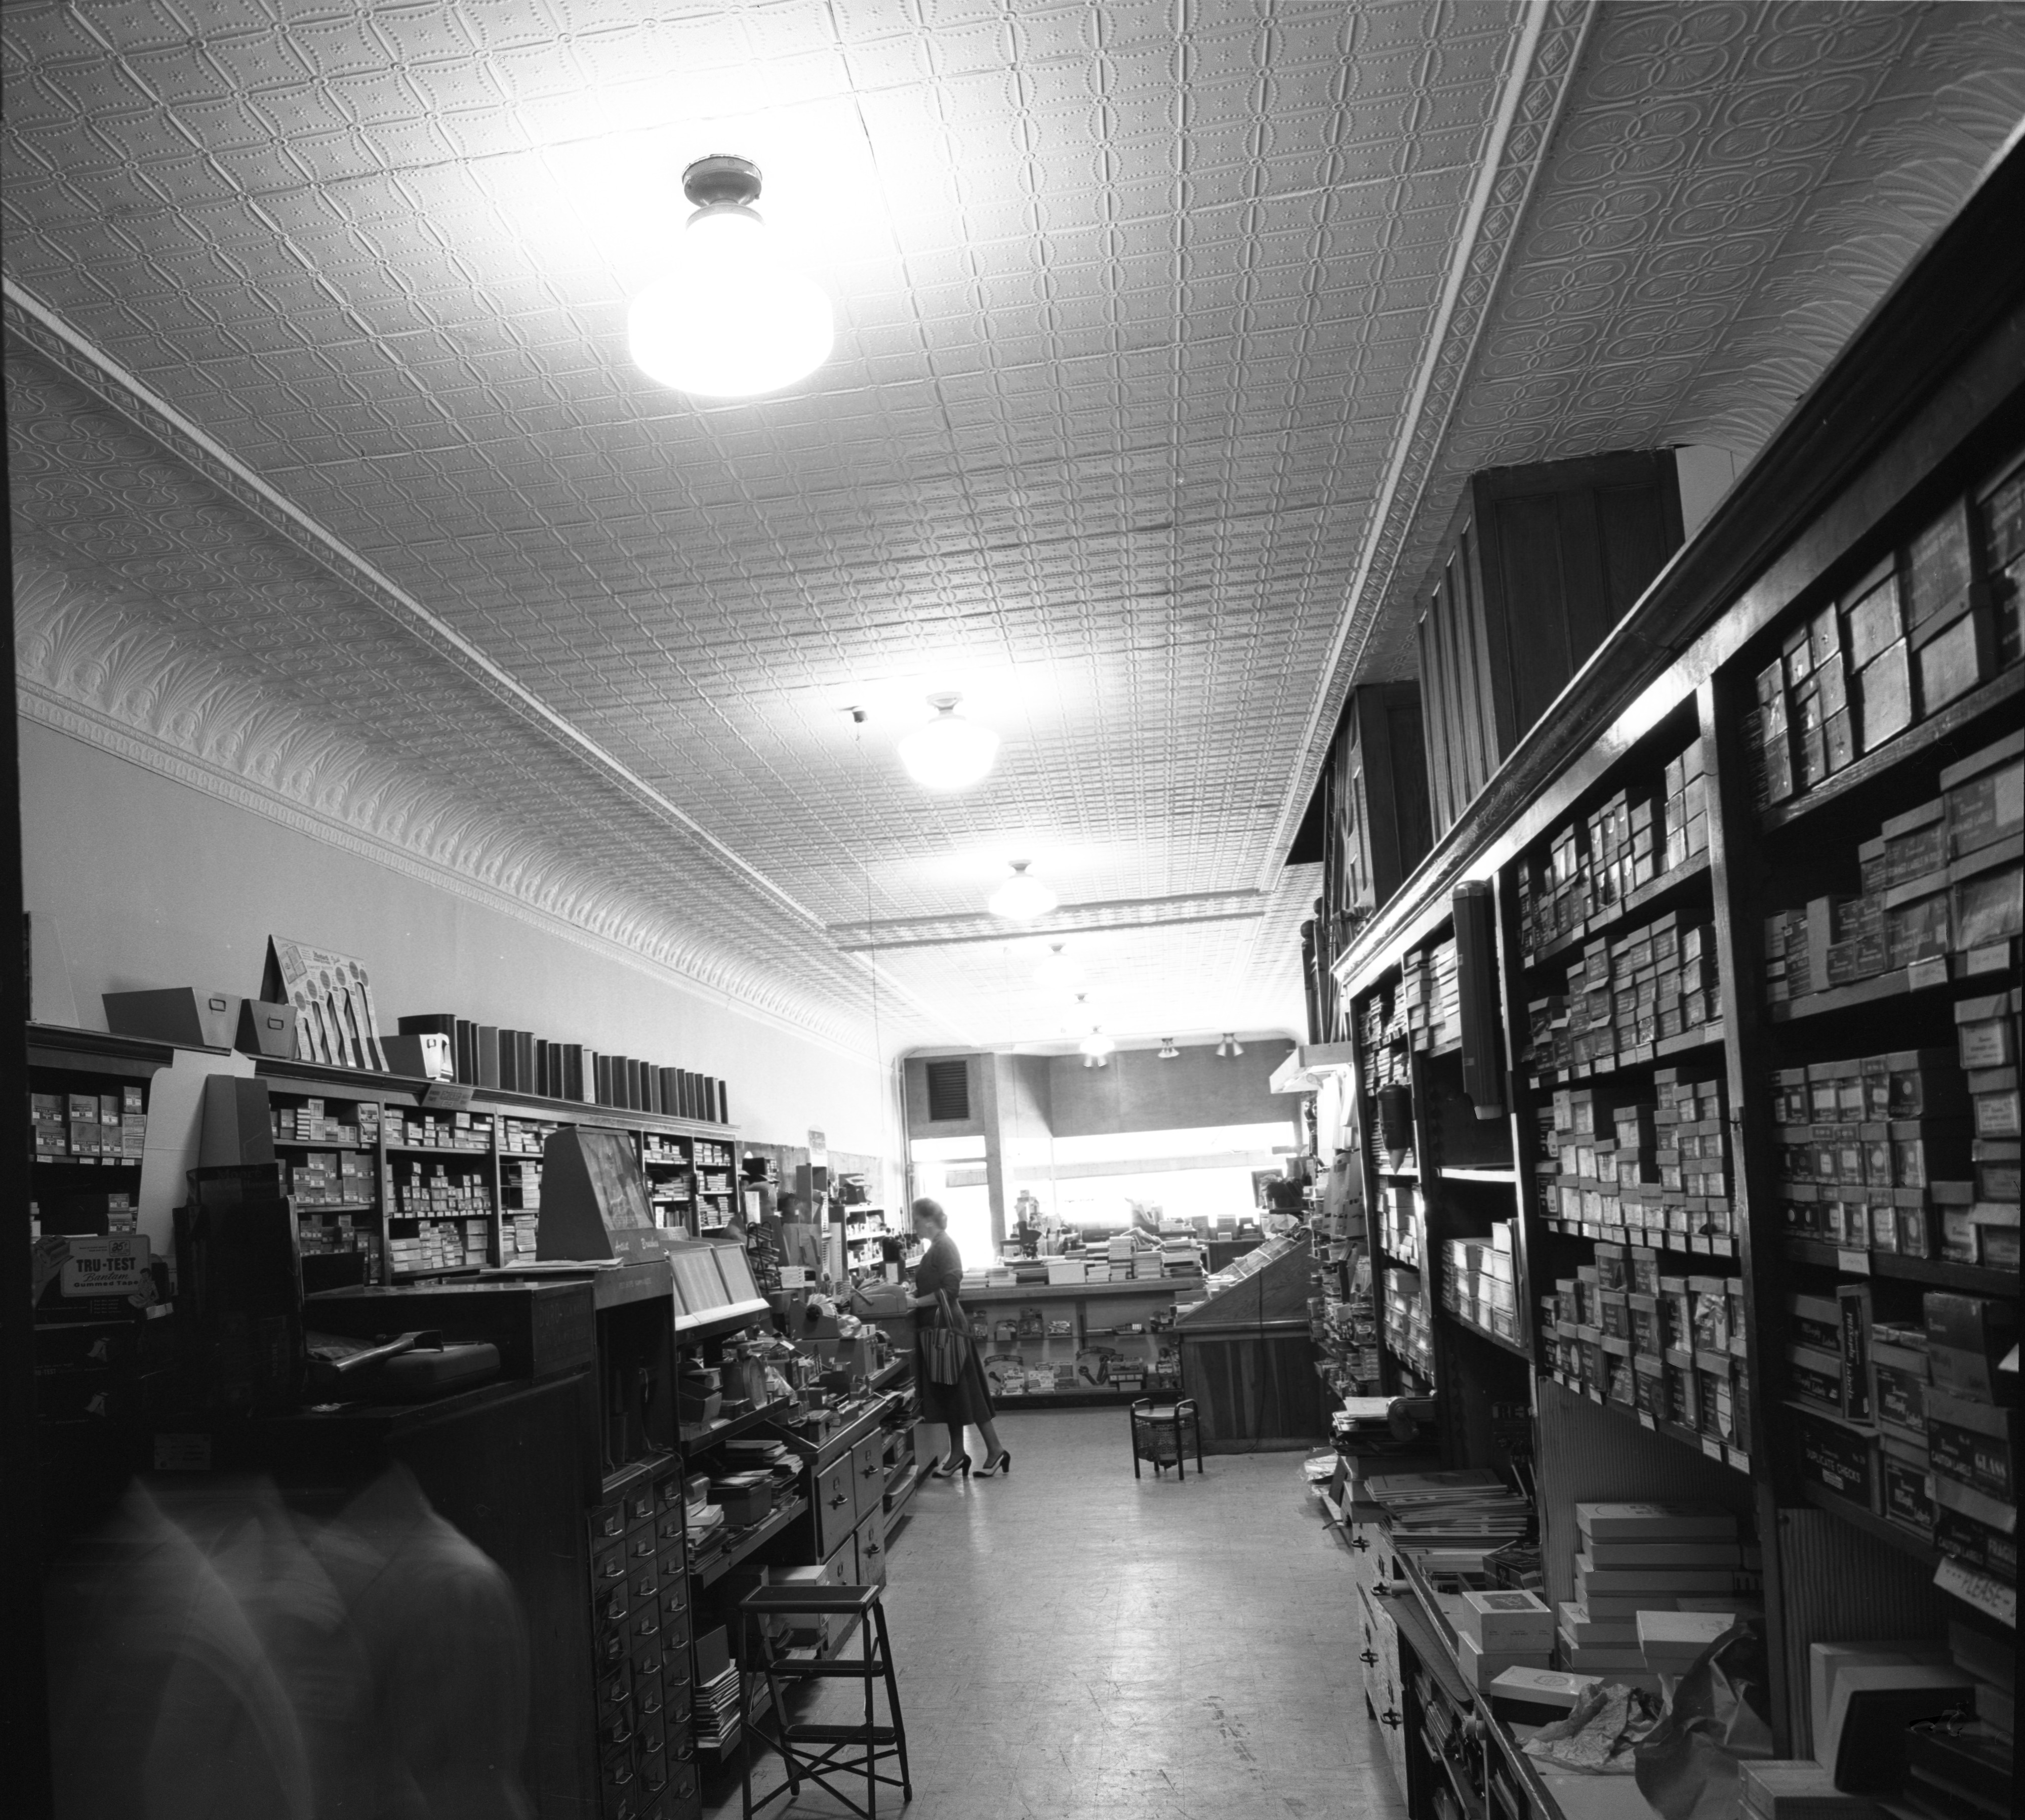 Interior Of Mayer-Schairer Prior To Remodeling, August 1956 image